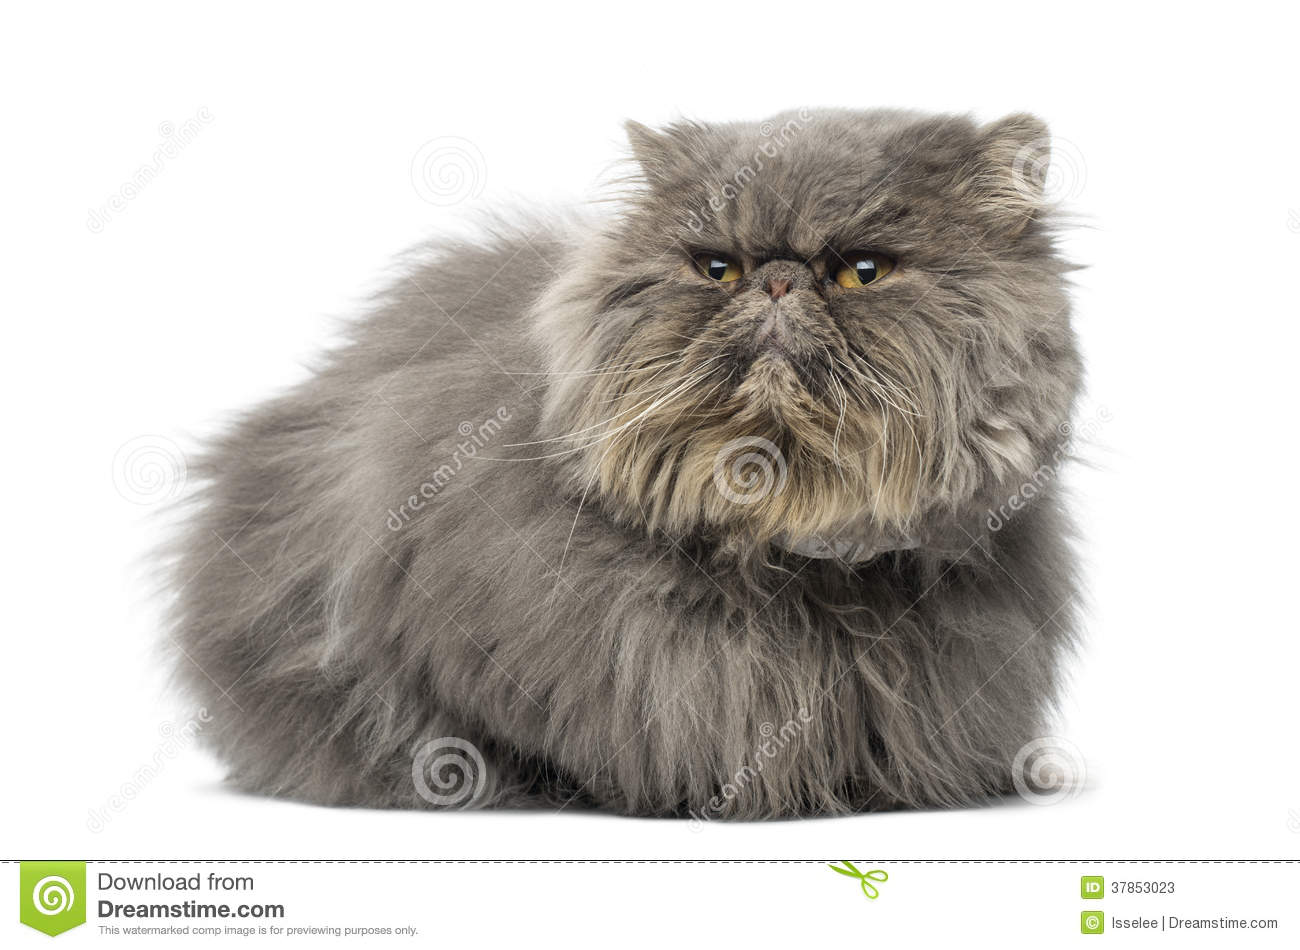 Front View Of A Grumpy Persian Cat Lying Looking Away